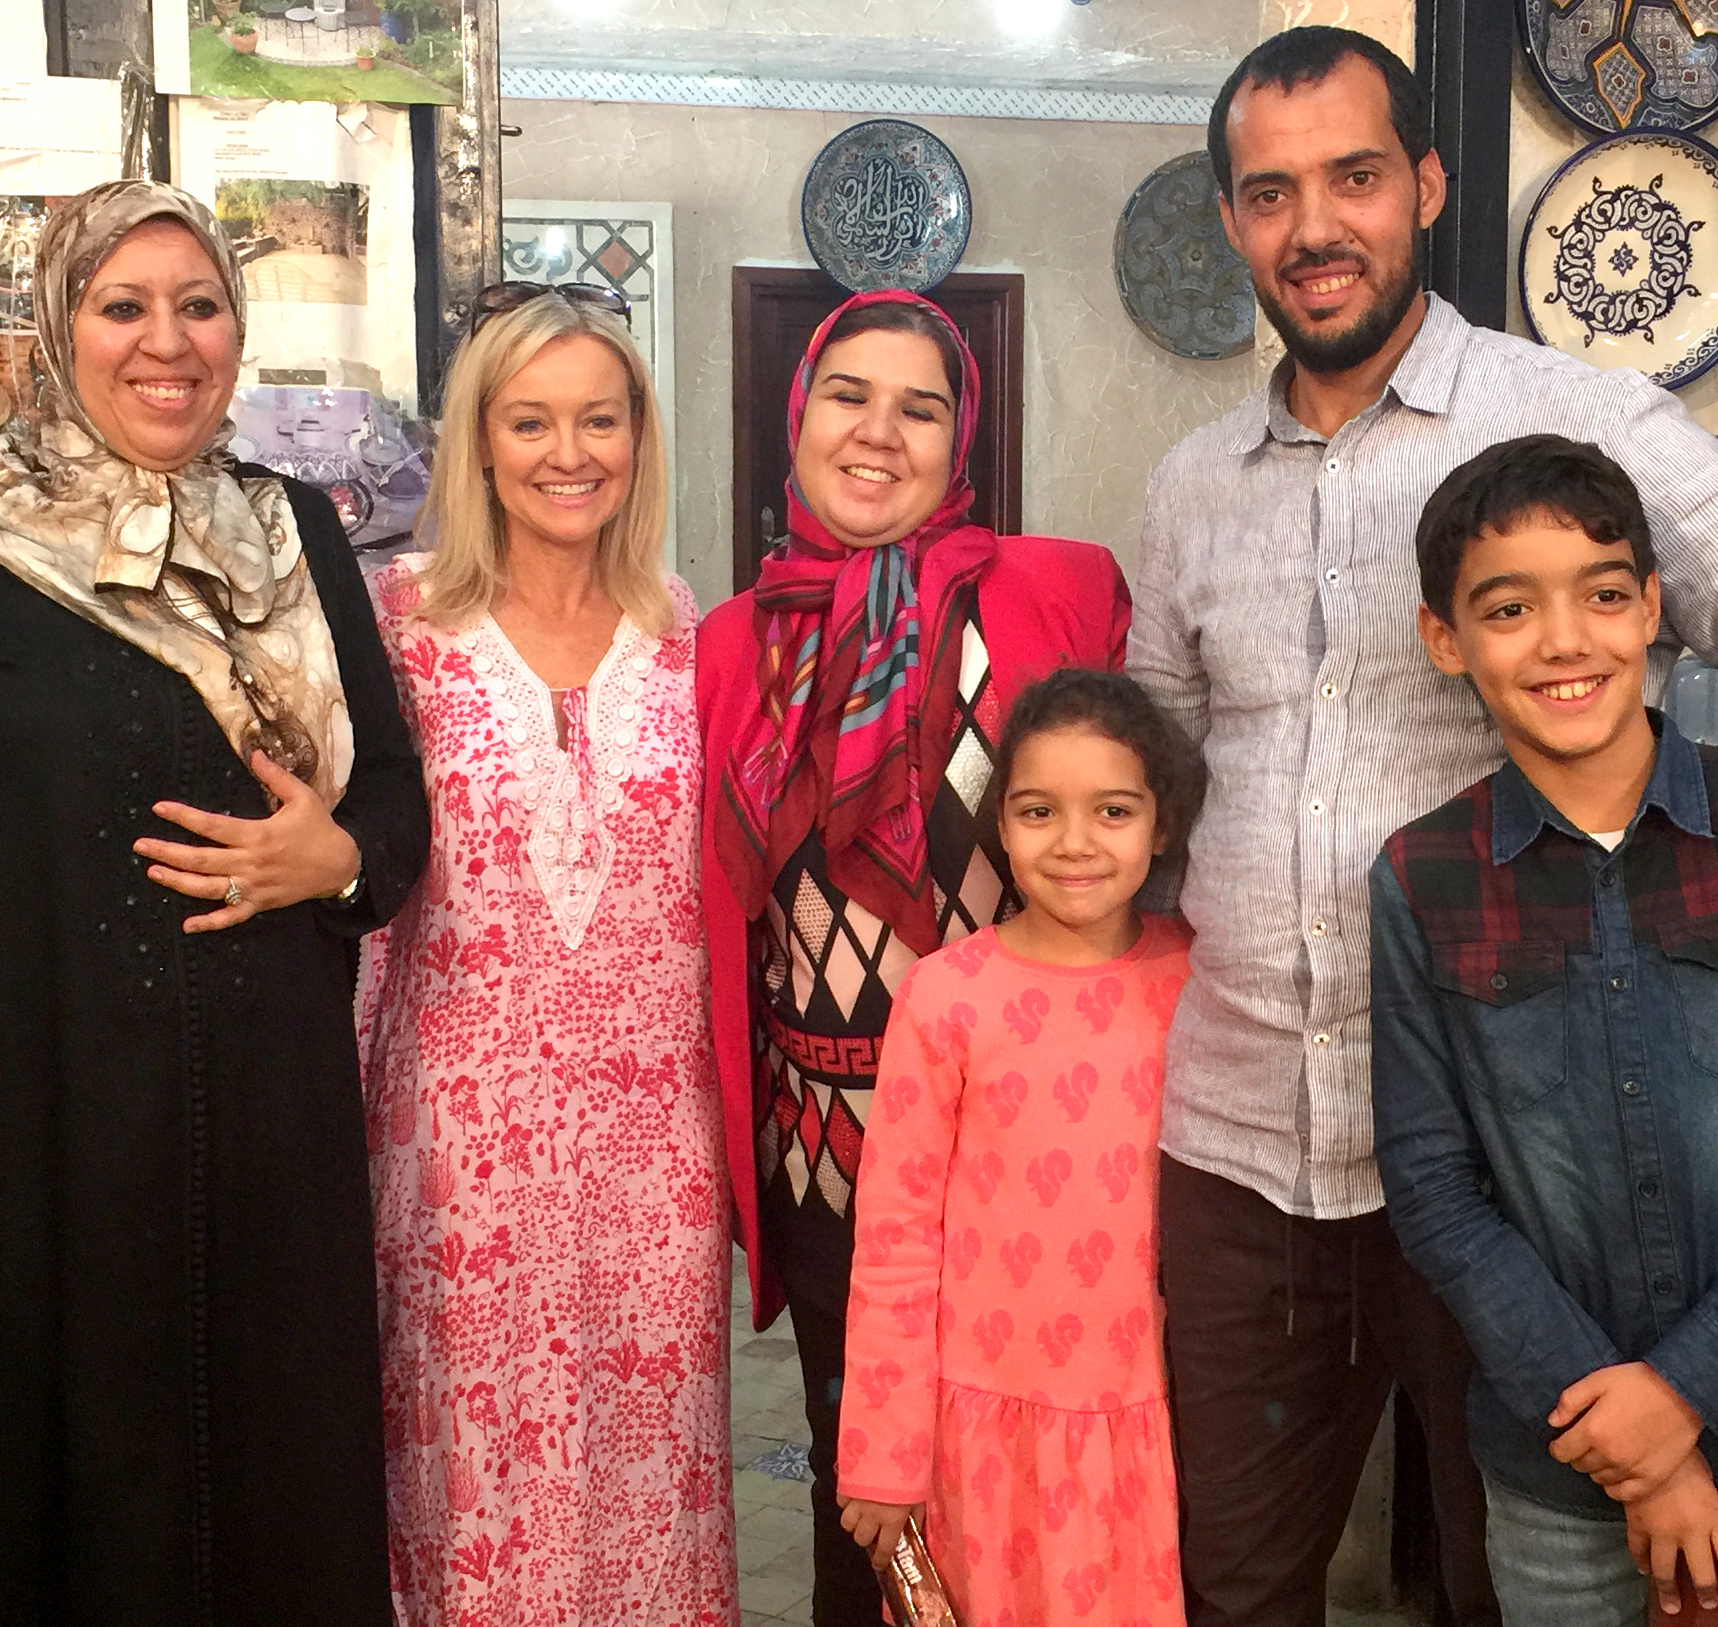 Sally_with_Fouad_and_family.jpg